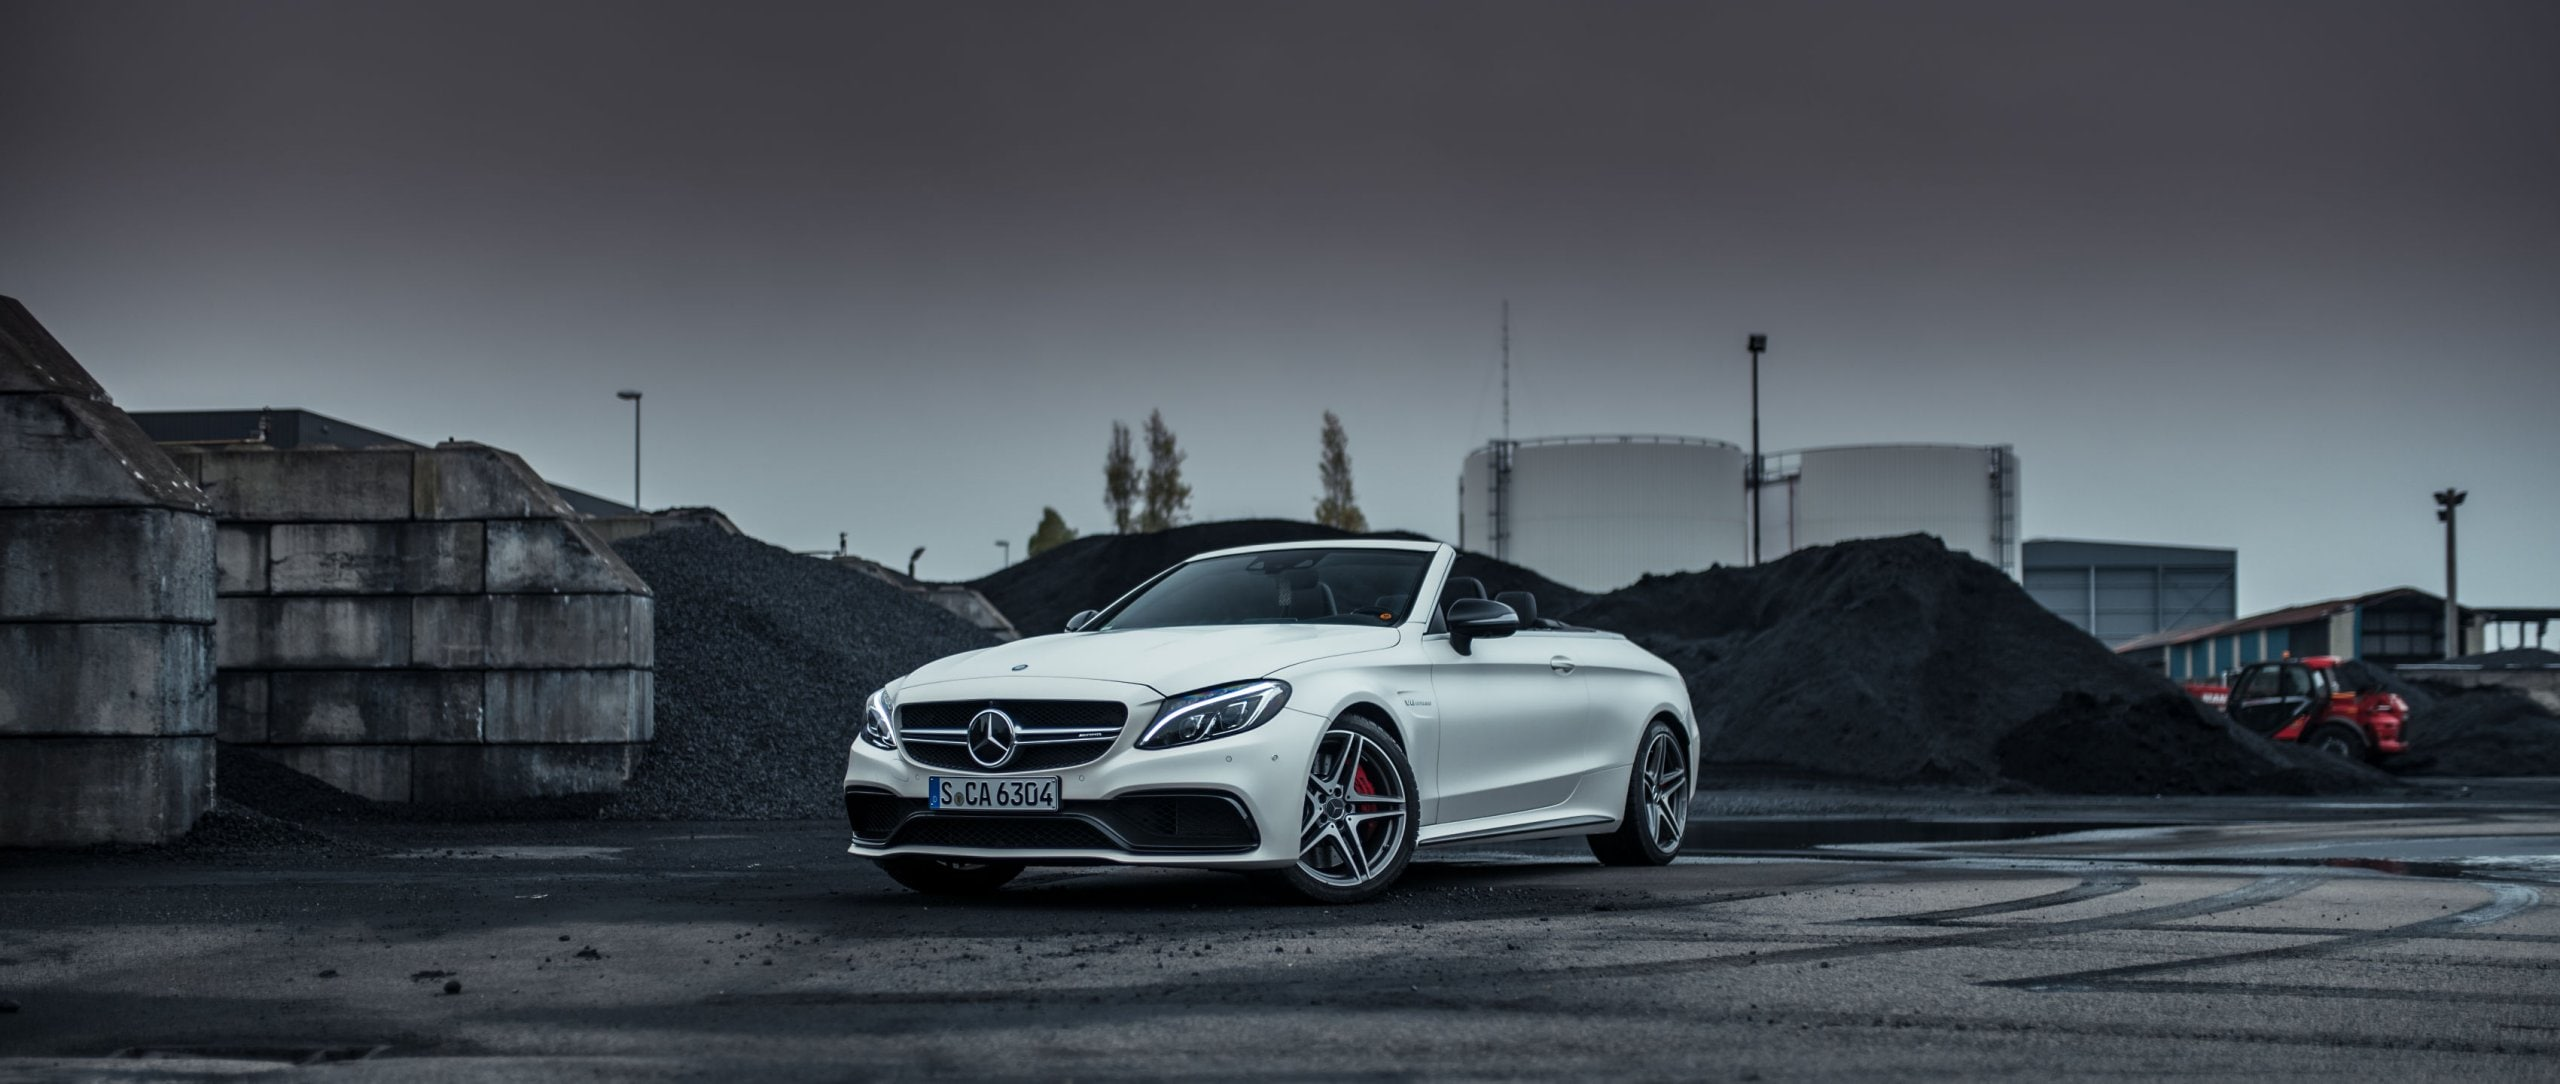 Mercedes-AMG C 63 S Cabriolet (A 205): front view of a white model.